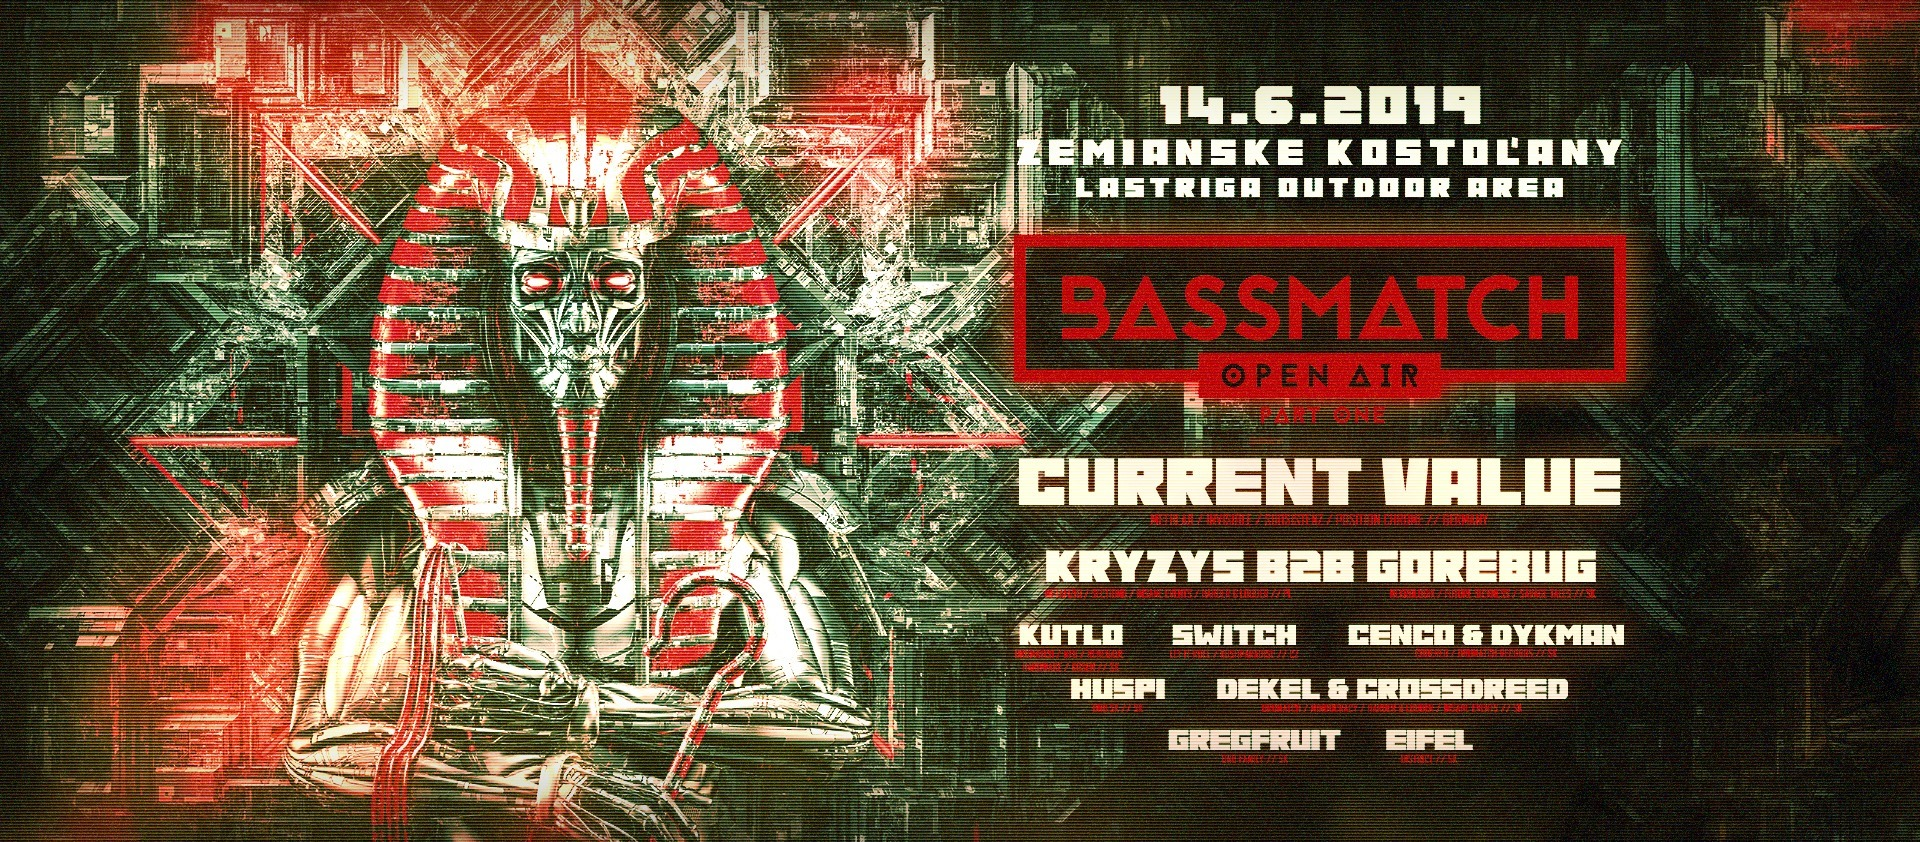 Bassmatch Open Air - Part One /14.6.2019/ Lastriga Outdoor Area